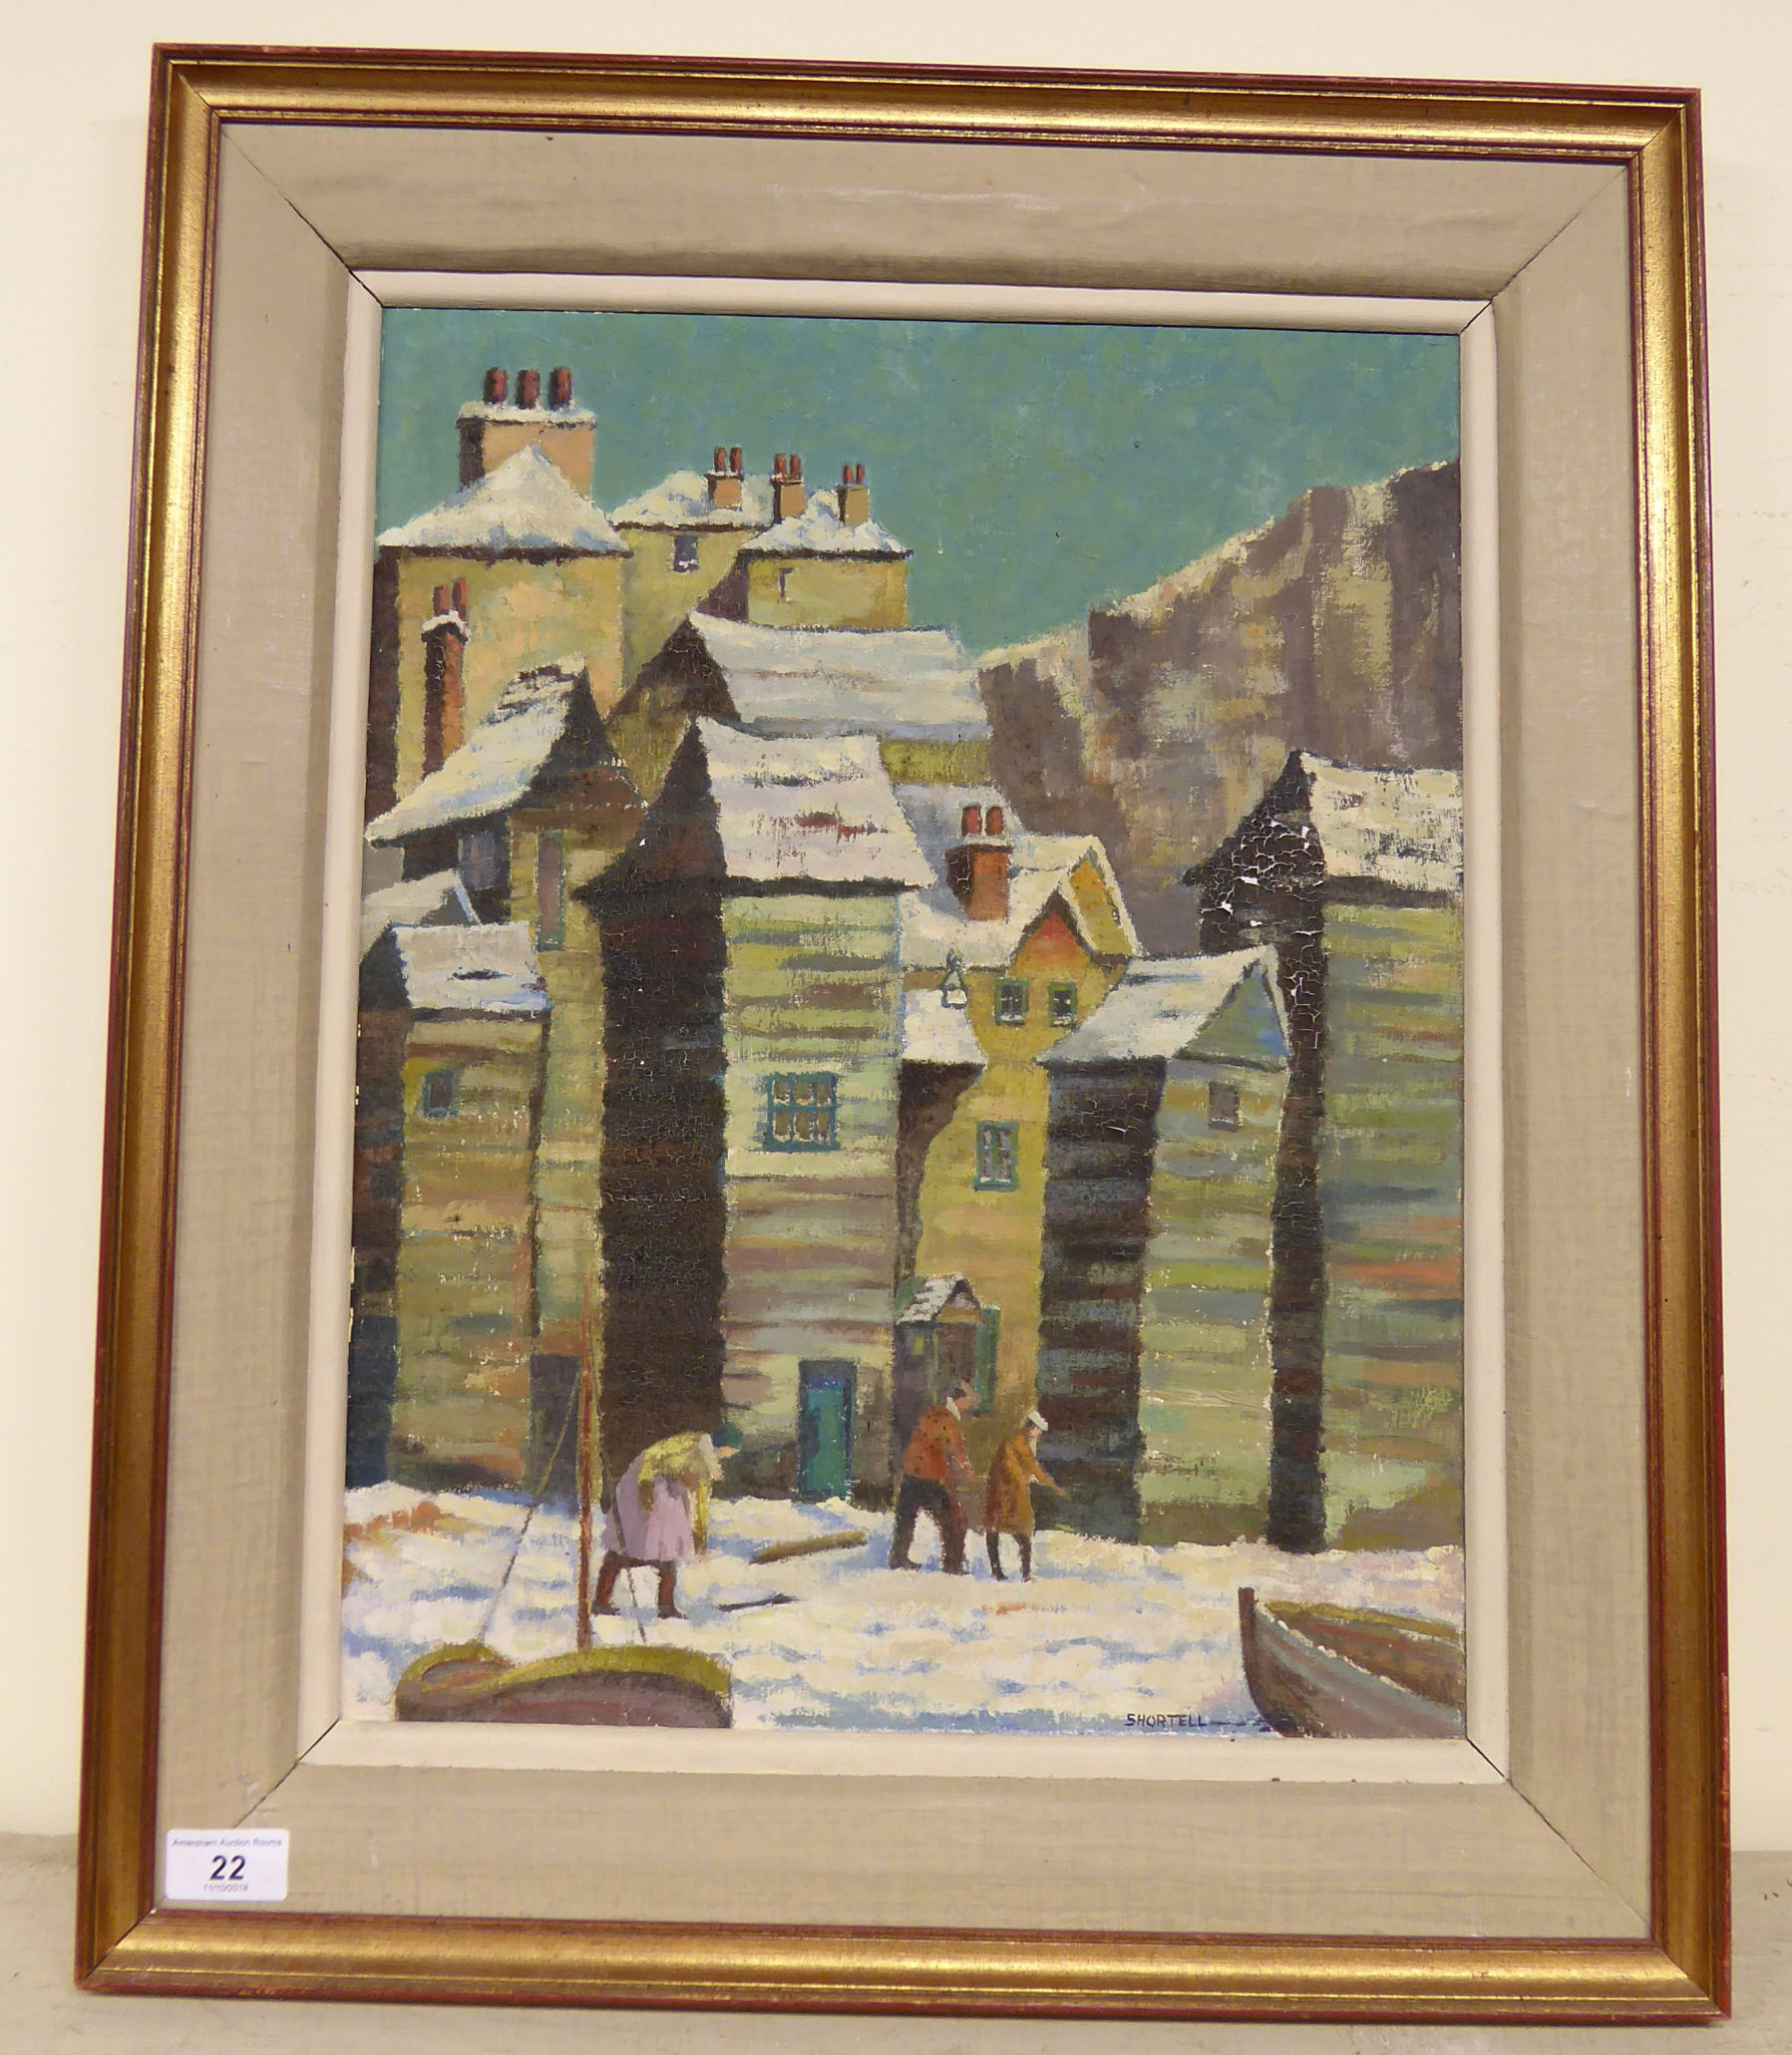 Lot 22 - LH Shortnell - 'The Net Sheds, Hastings' oil on board bears a signature 18.